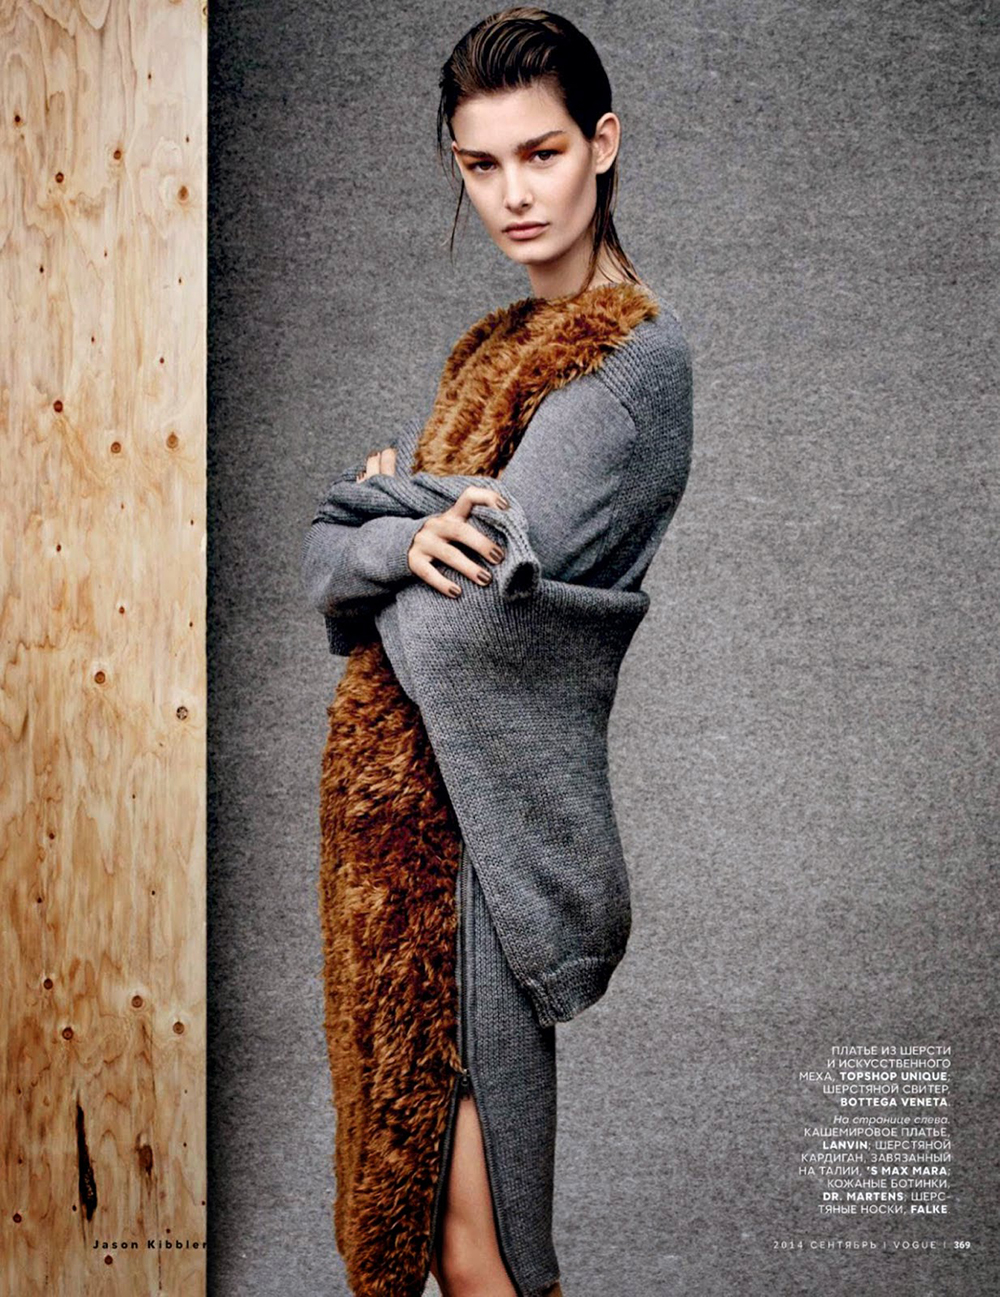 Ophelie Guillermand By Jason Kibbler For Vogue Russia September 20144